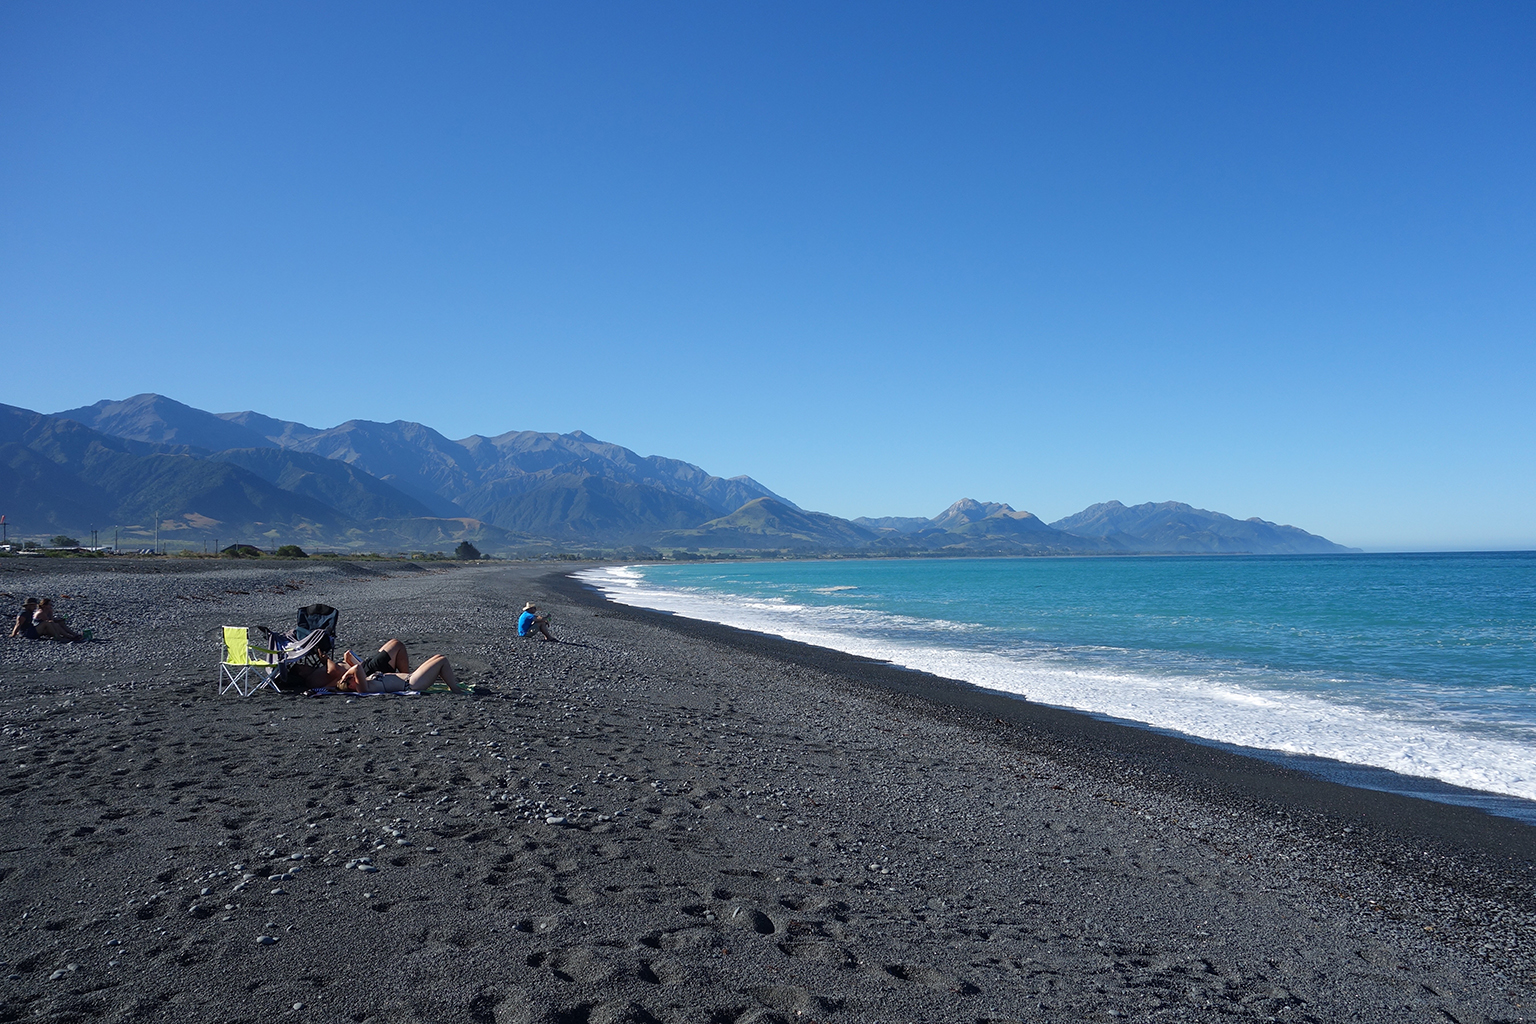 Evening beach time in Kaikoura, NZ